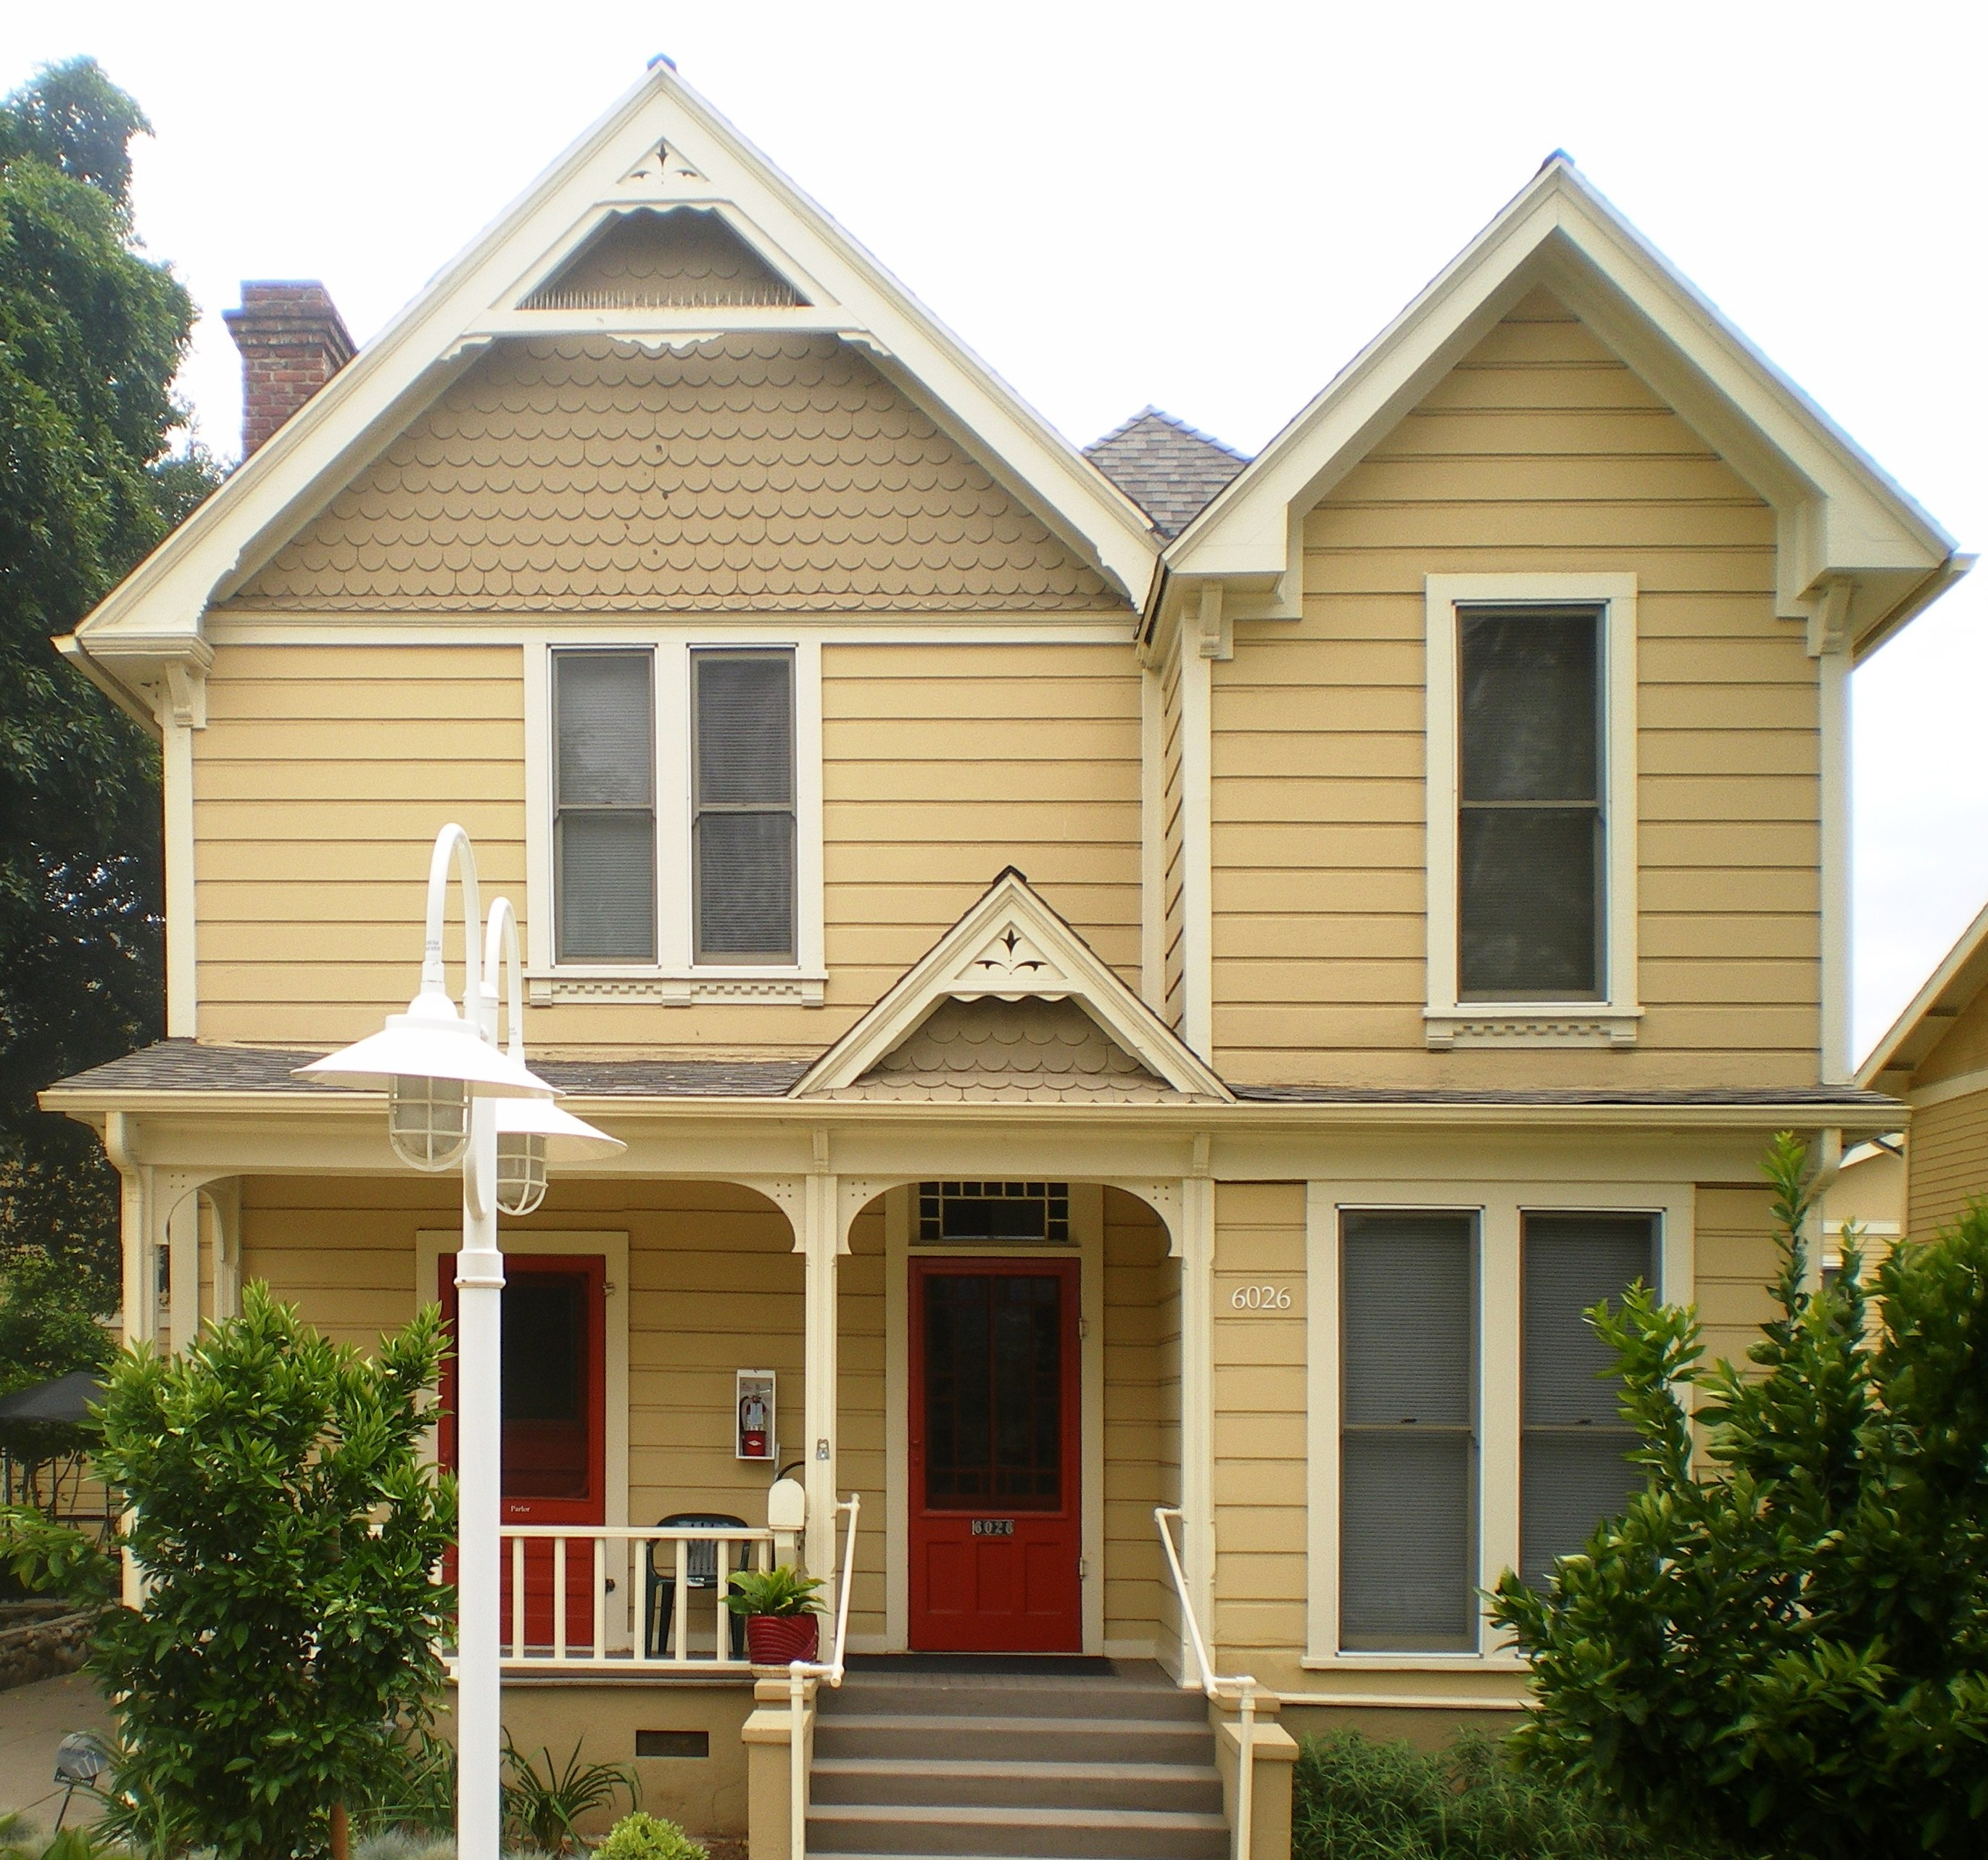 File:Pisgah Home Historic District, Highland Park.JPG - Wikimedia ...